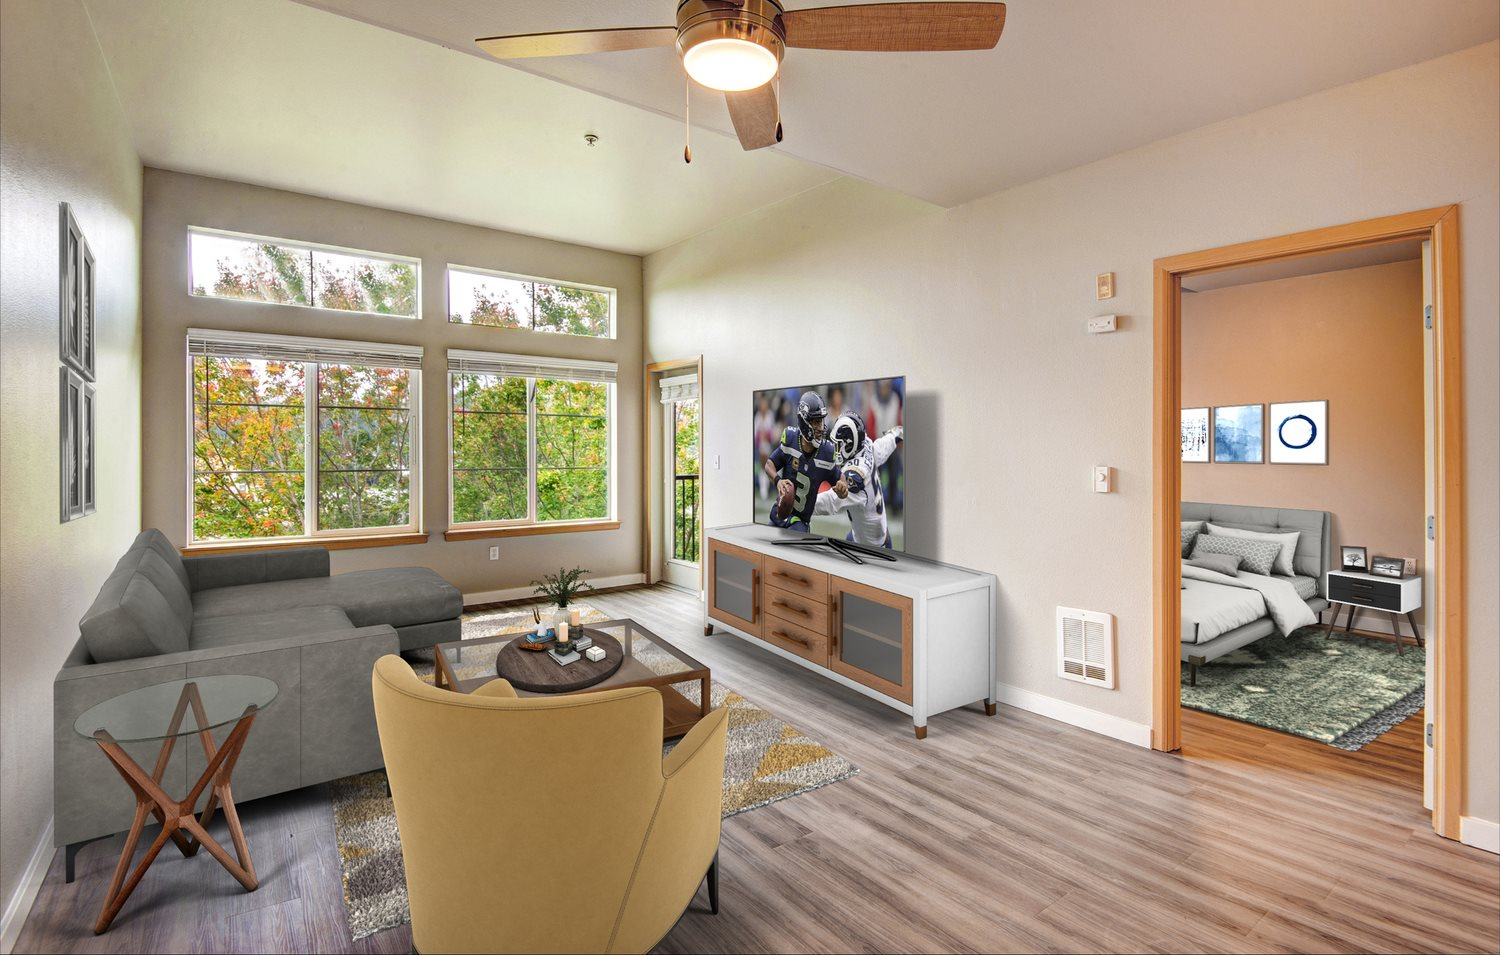 spacious units with 9 foot ceilings and hardwood floors